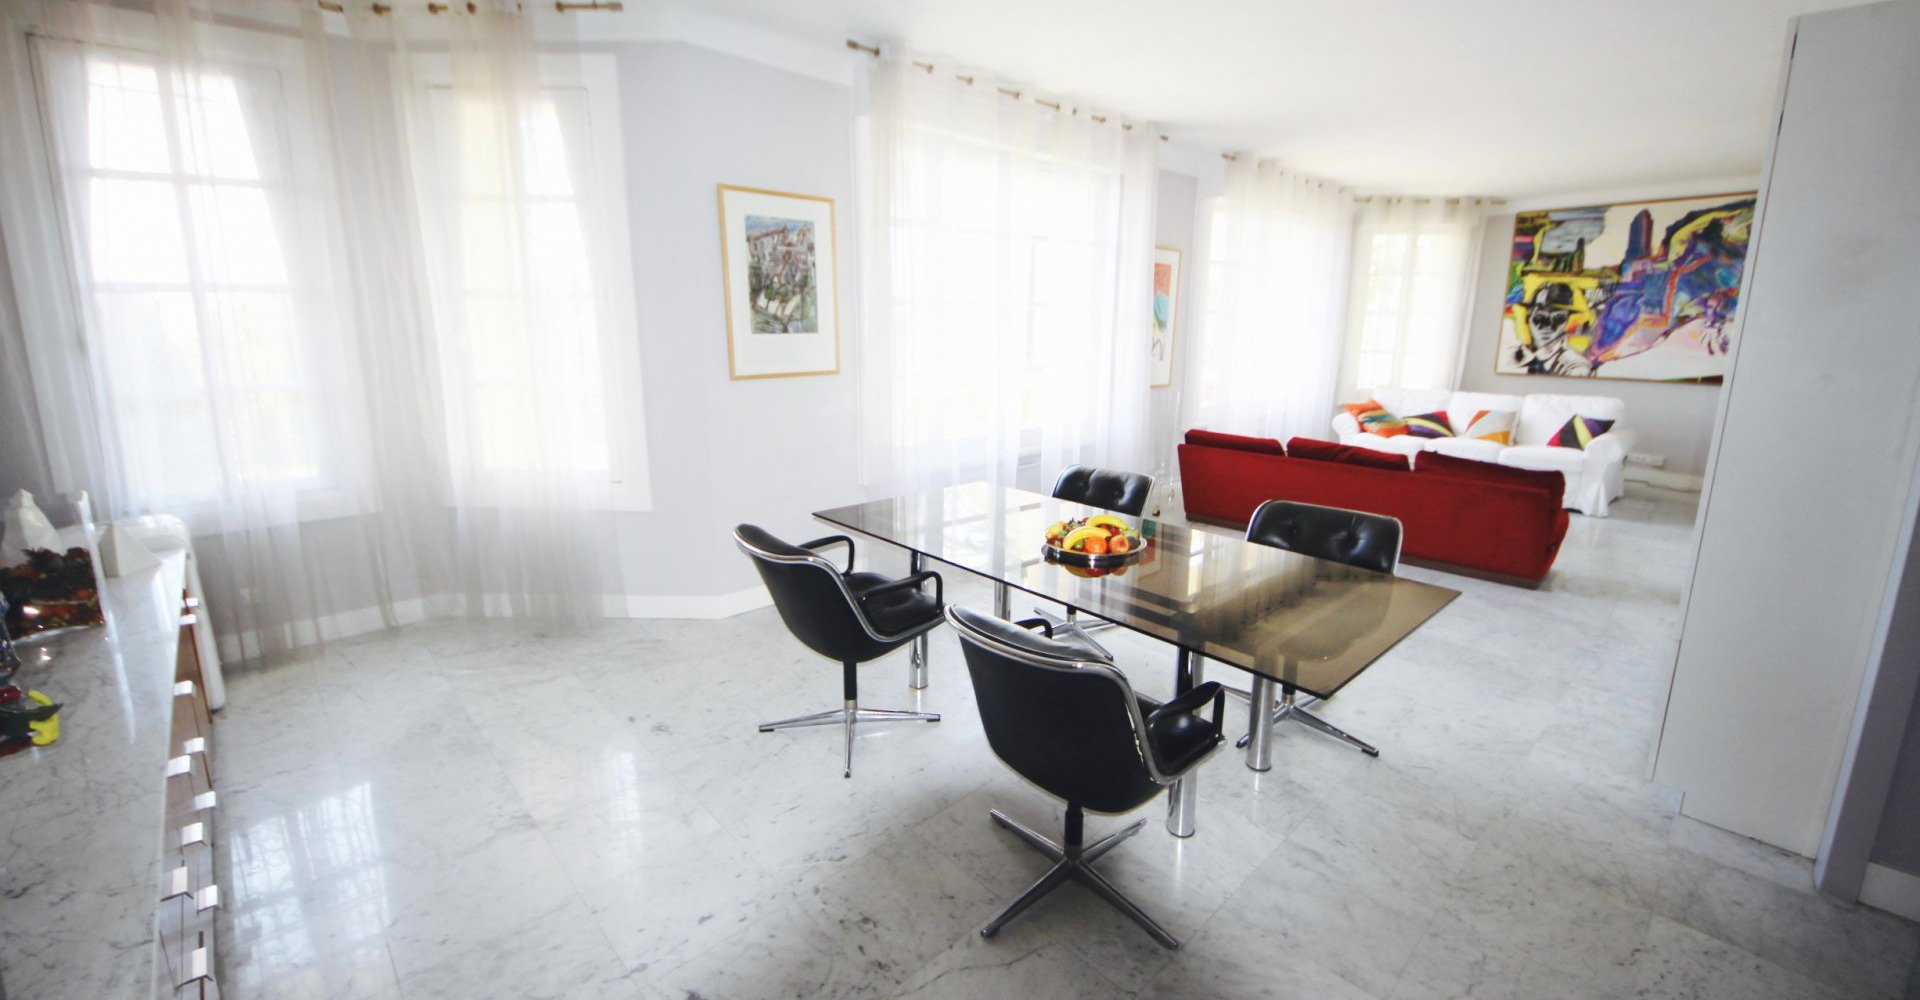 Cannes Midi - Seafront, big  2 bedrooms apartment of 95sqm